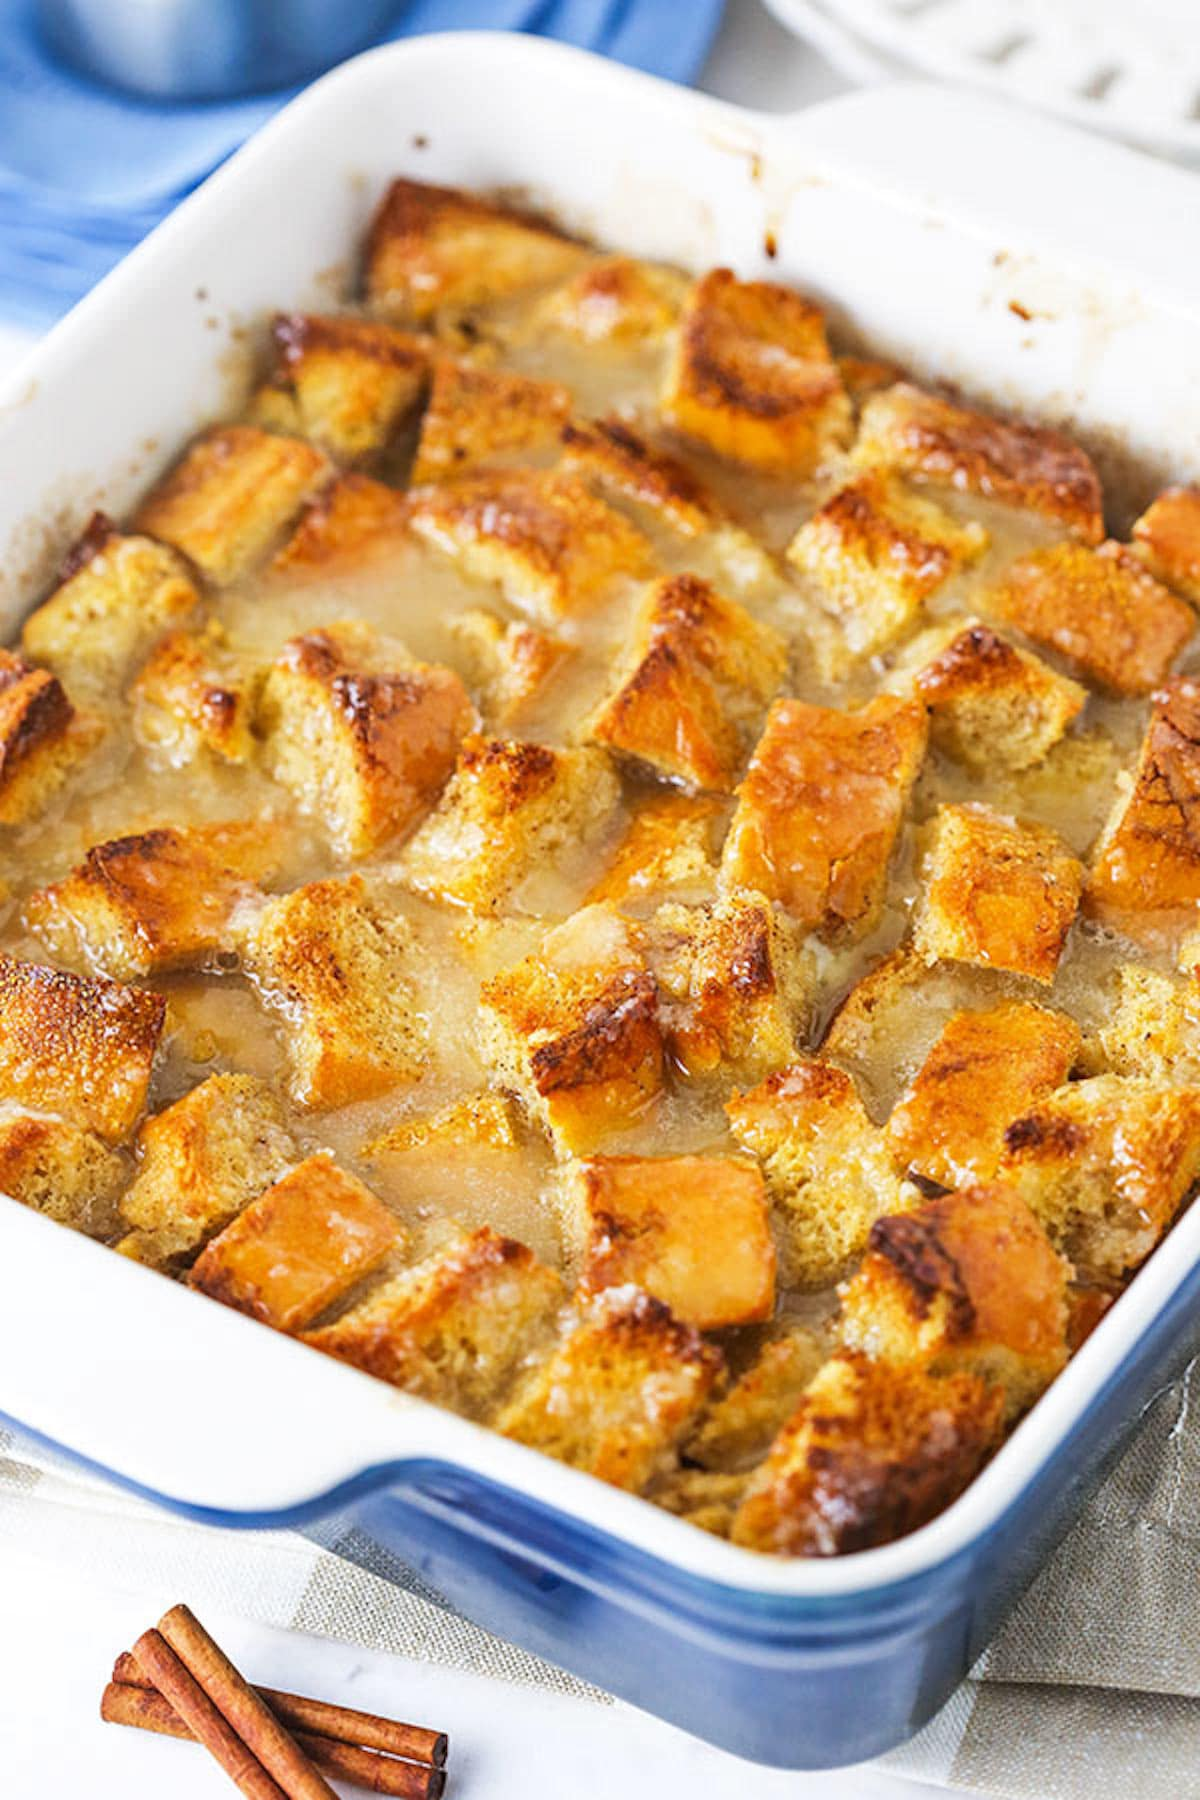 Homemade Bread Pudding in a White and Blue Pan